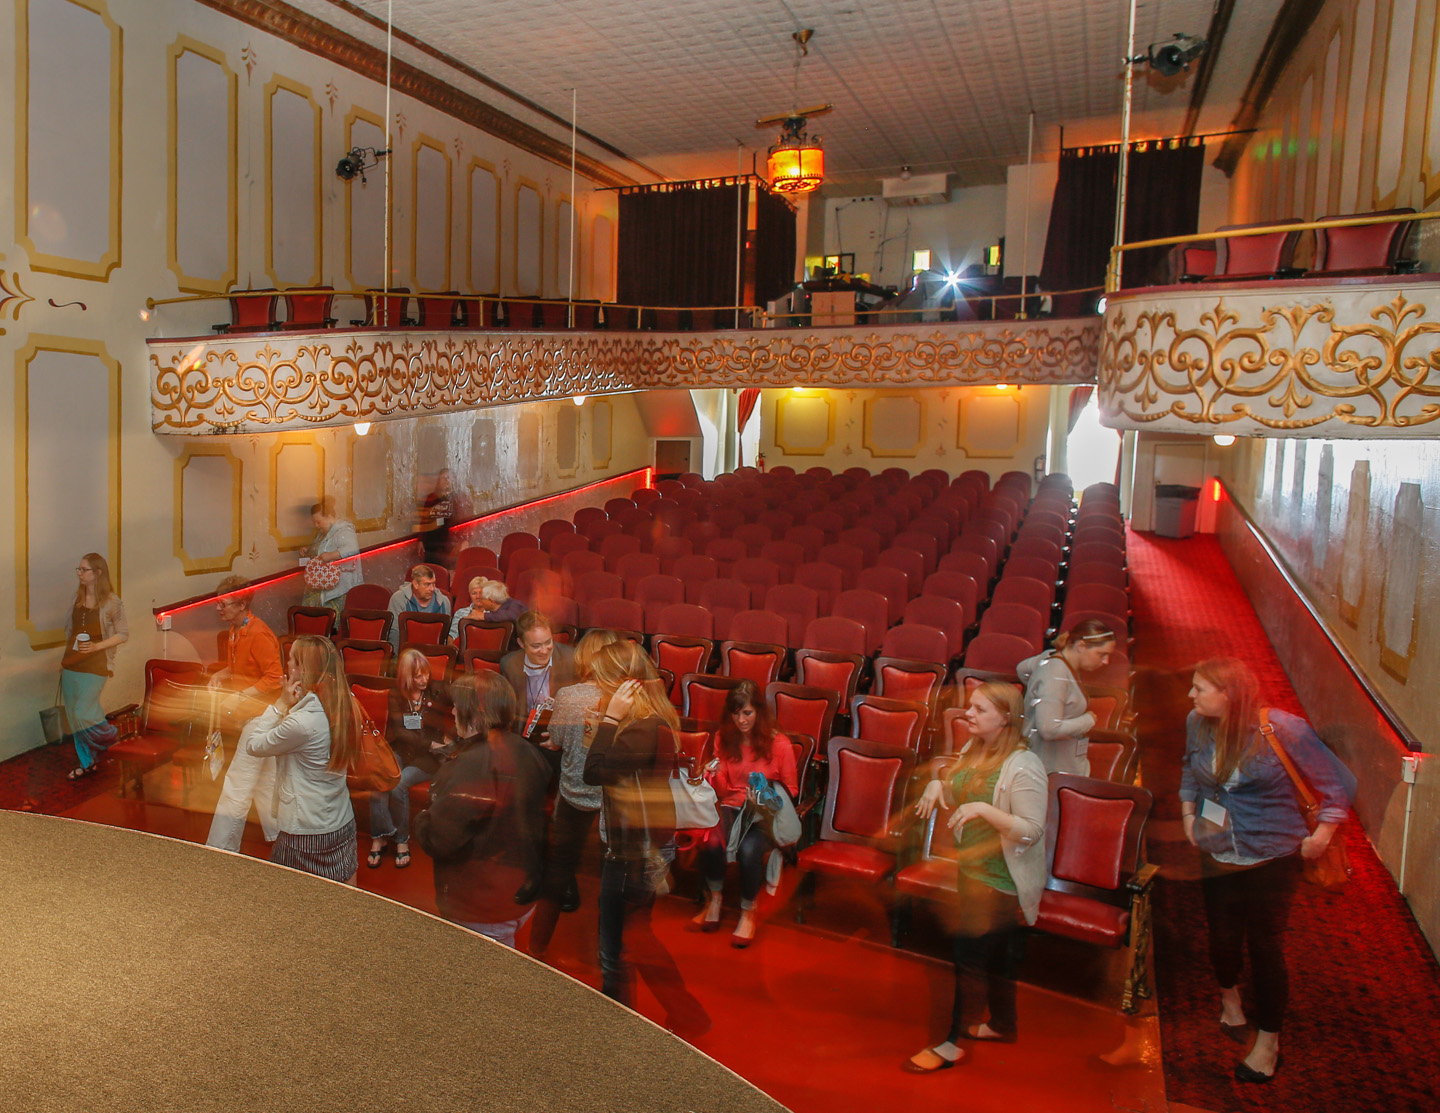 Touring the historic Ruby Theatre, Chelan, WA.